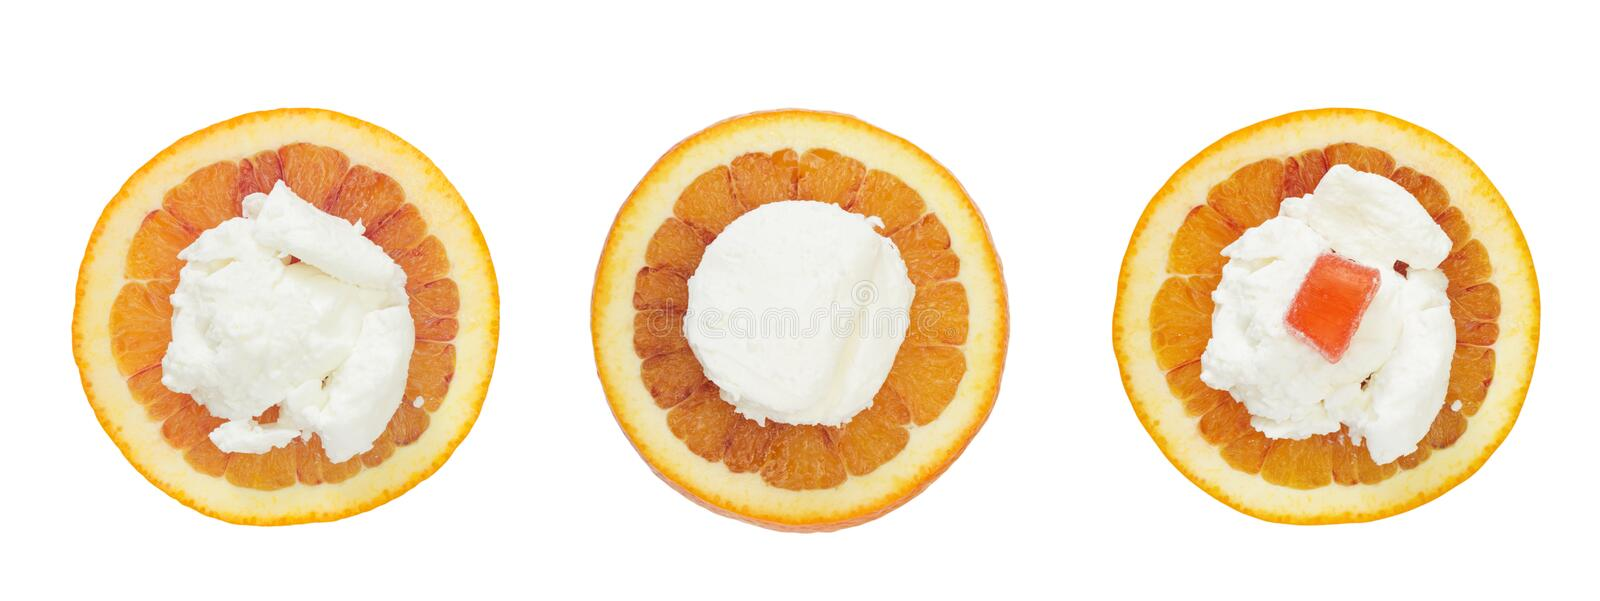 A set of photos from above of fresh sweet orange slices and some homemade cottage cheese. Healthy vegetarian breakfast. Isolated royalty free stock photos